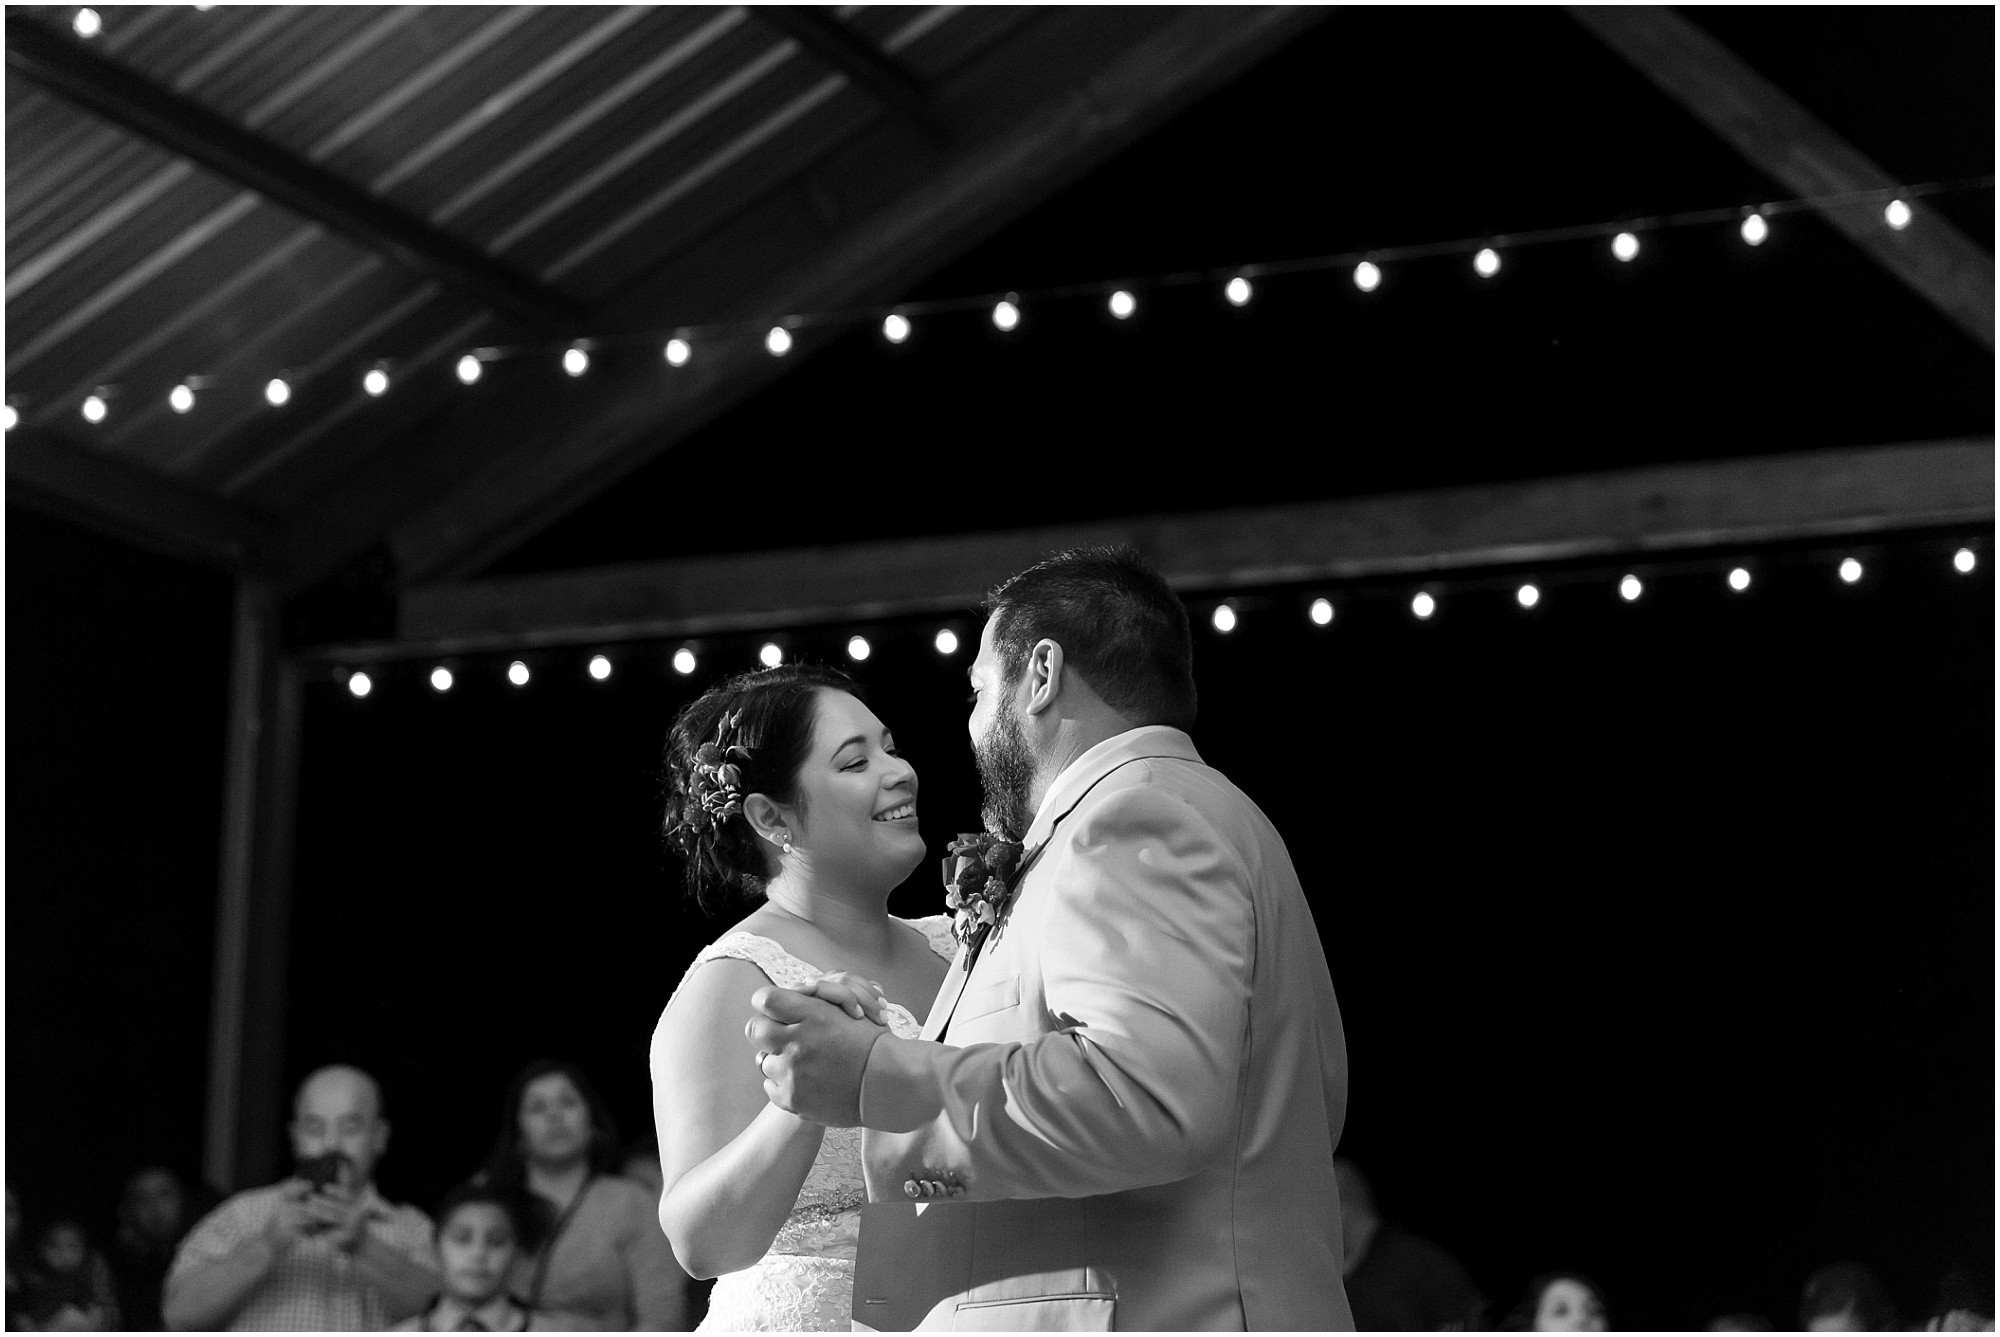 Bride & Groom dance under string lights during their wedding reception - Dove Creek Ranch in Dublin, Texas - Jason & Melaina Photography - www.jasonandmelaina.com